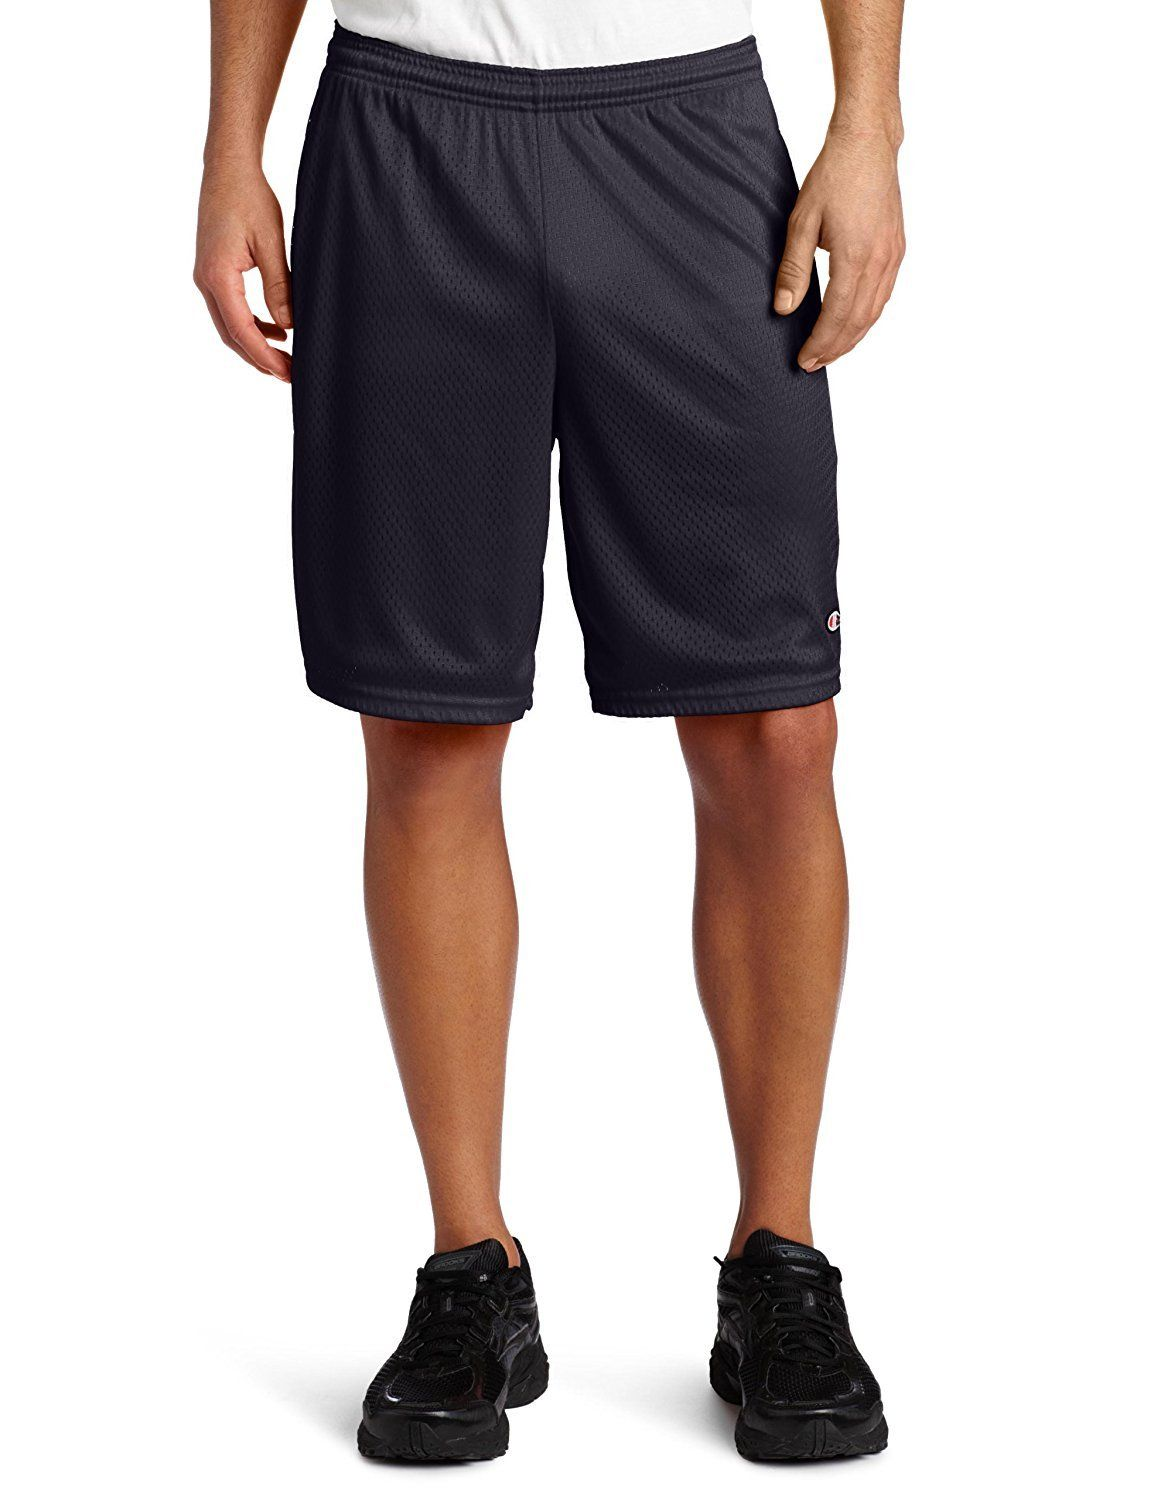 74d9ac973bf6 100% Polyester Imported shorts closure Machine Wash Lightweight breathable  mesh short featuring logo at left hem and covered elastic waistband  Internal ...